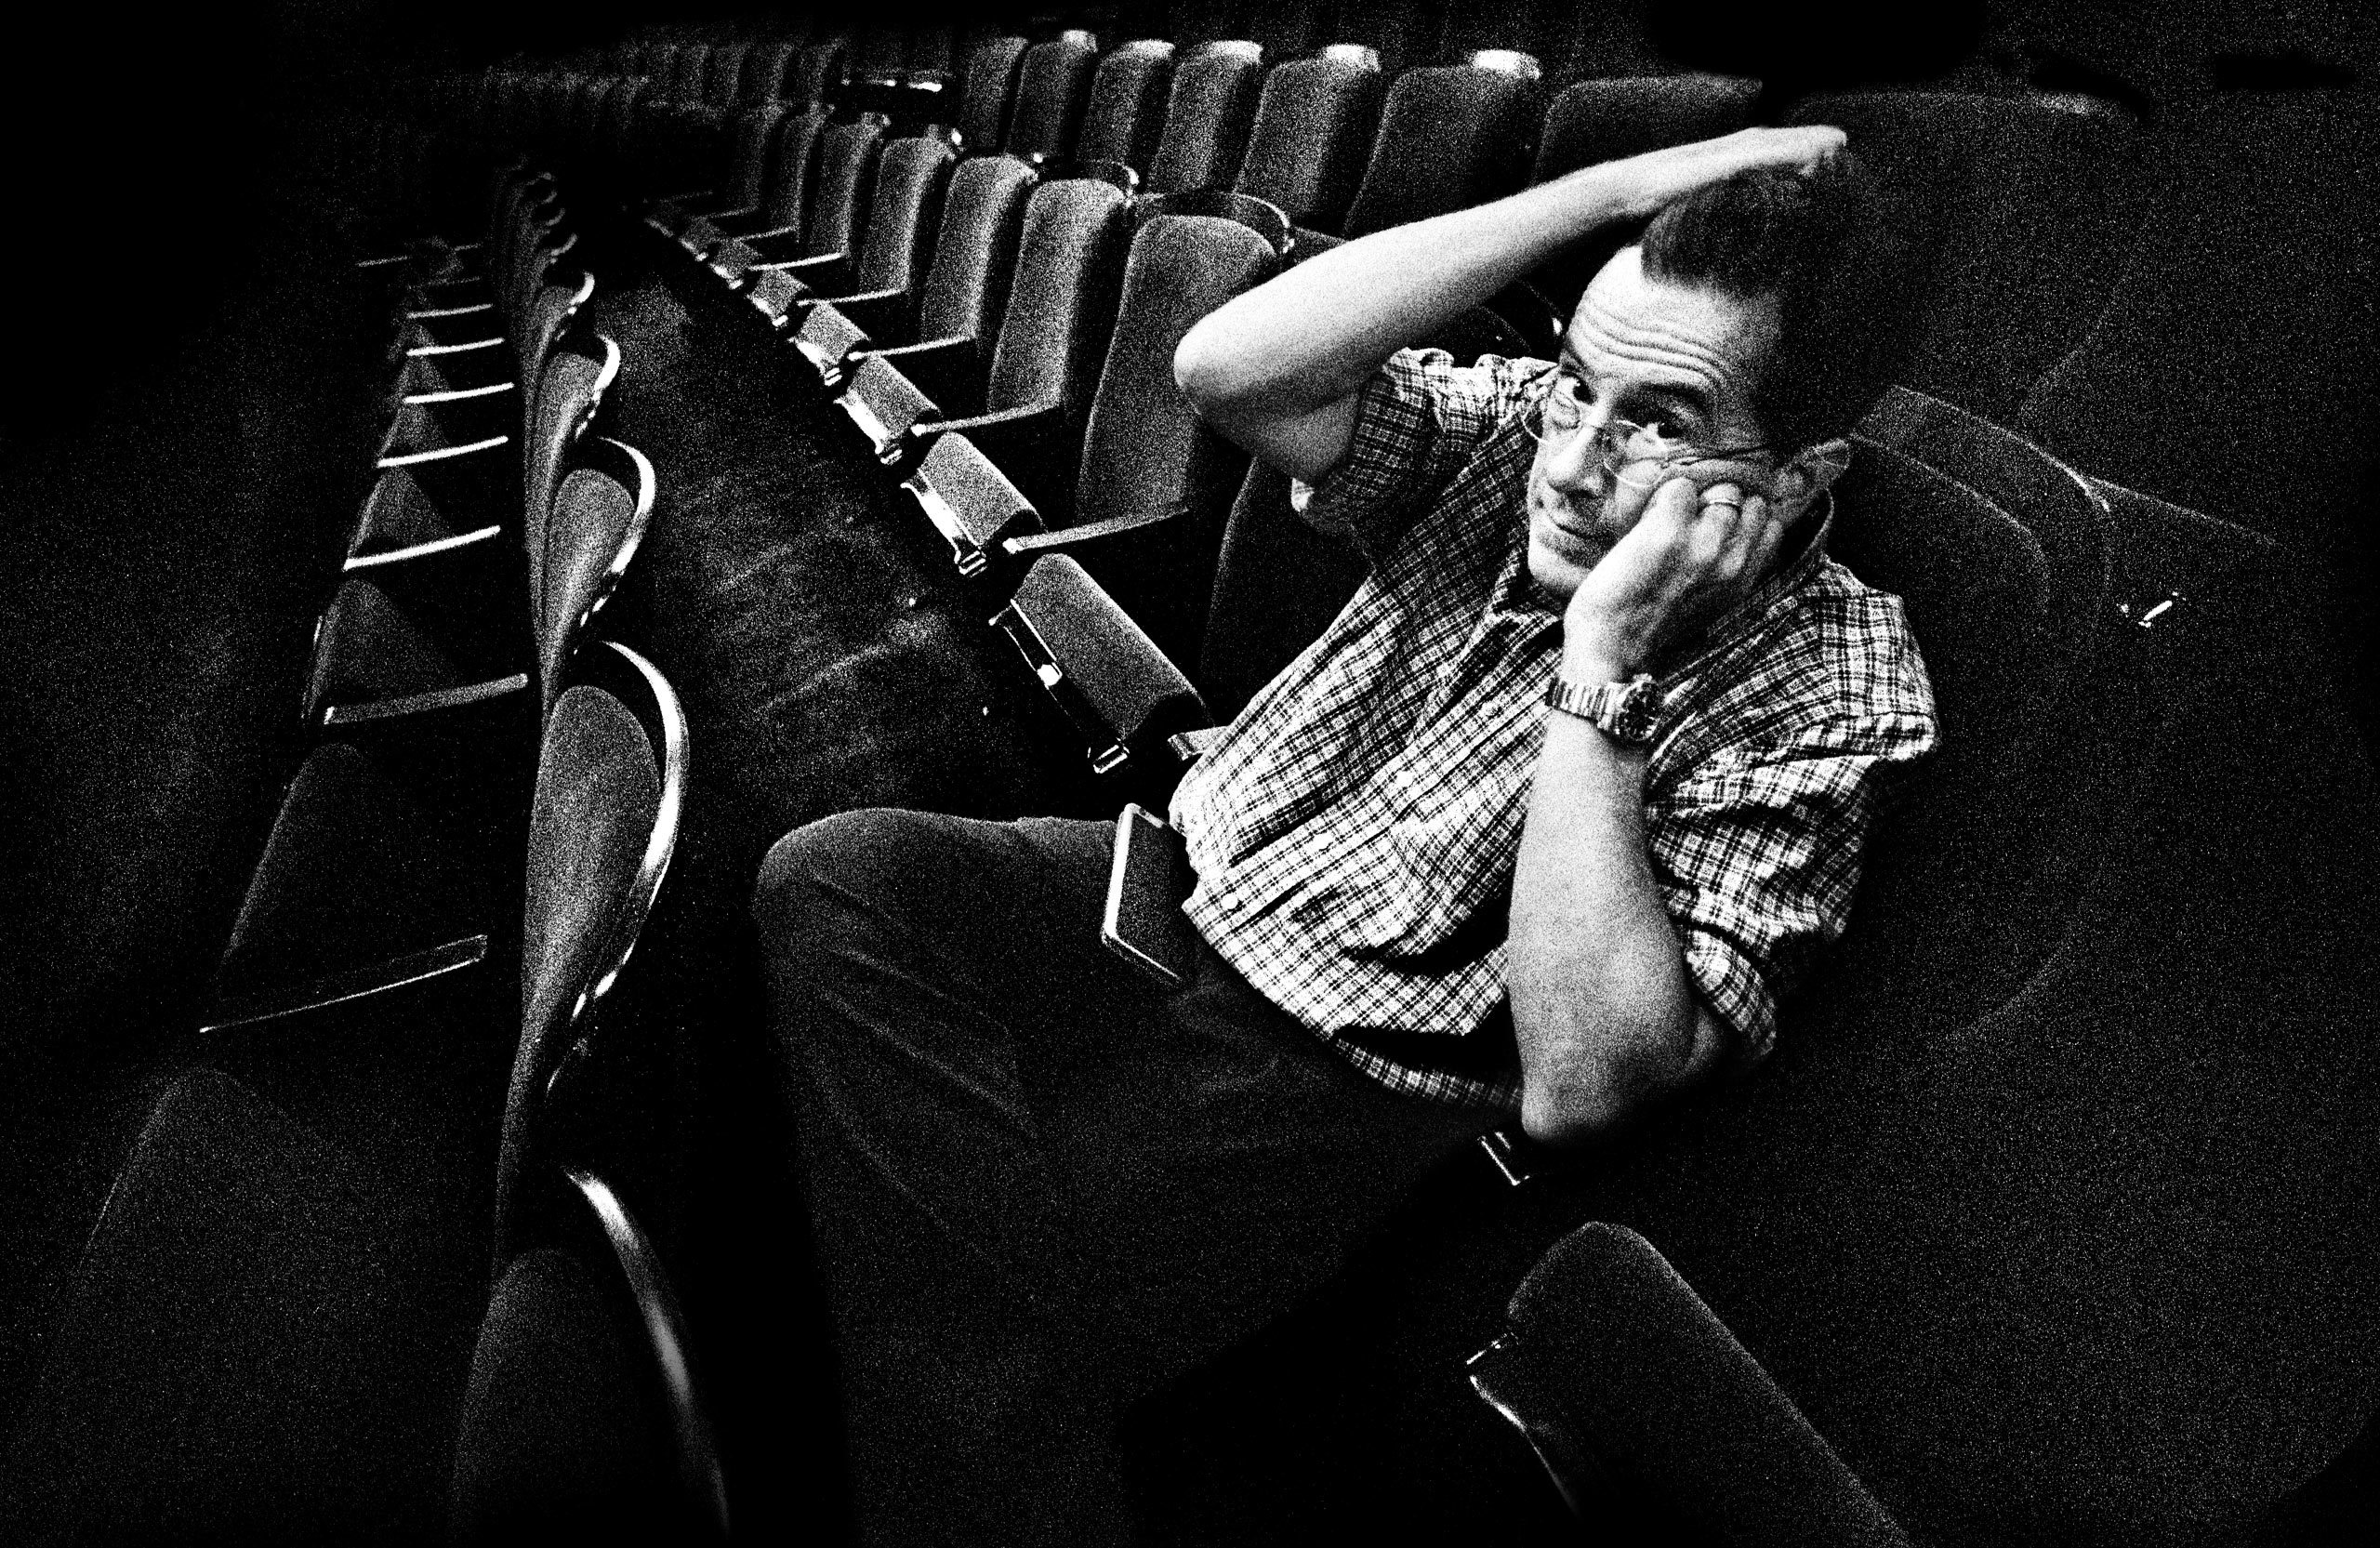 Stephen Colbert sitting in the newly installed chairs at the Ed Sullivan theater. Aug. 13, 2015.